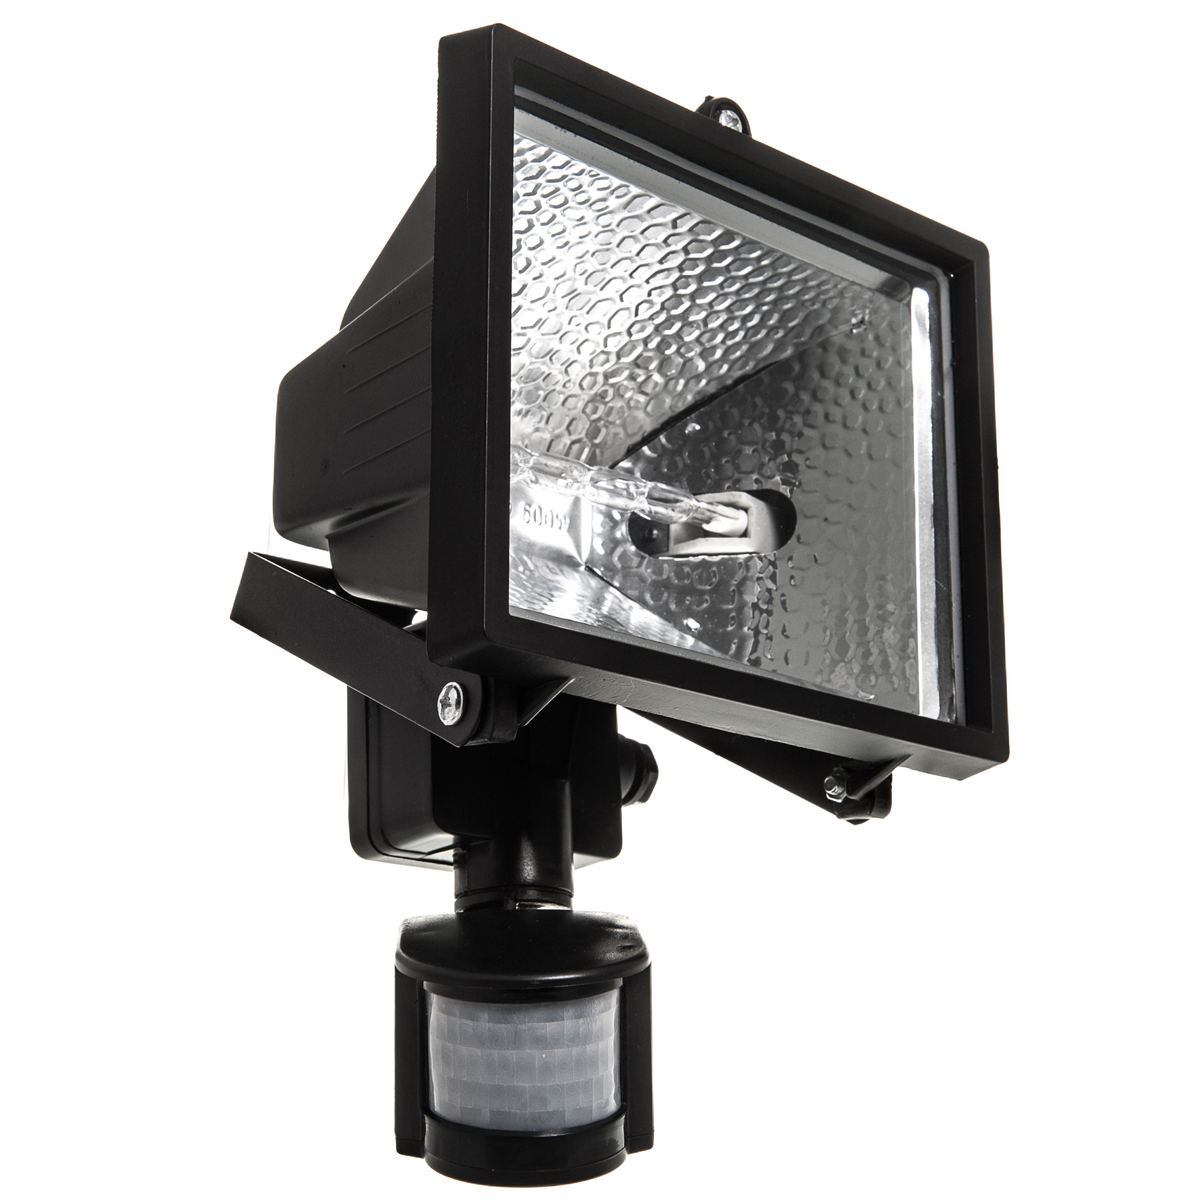 New 400w Halogen Floodlight Security Light With Motion Pir